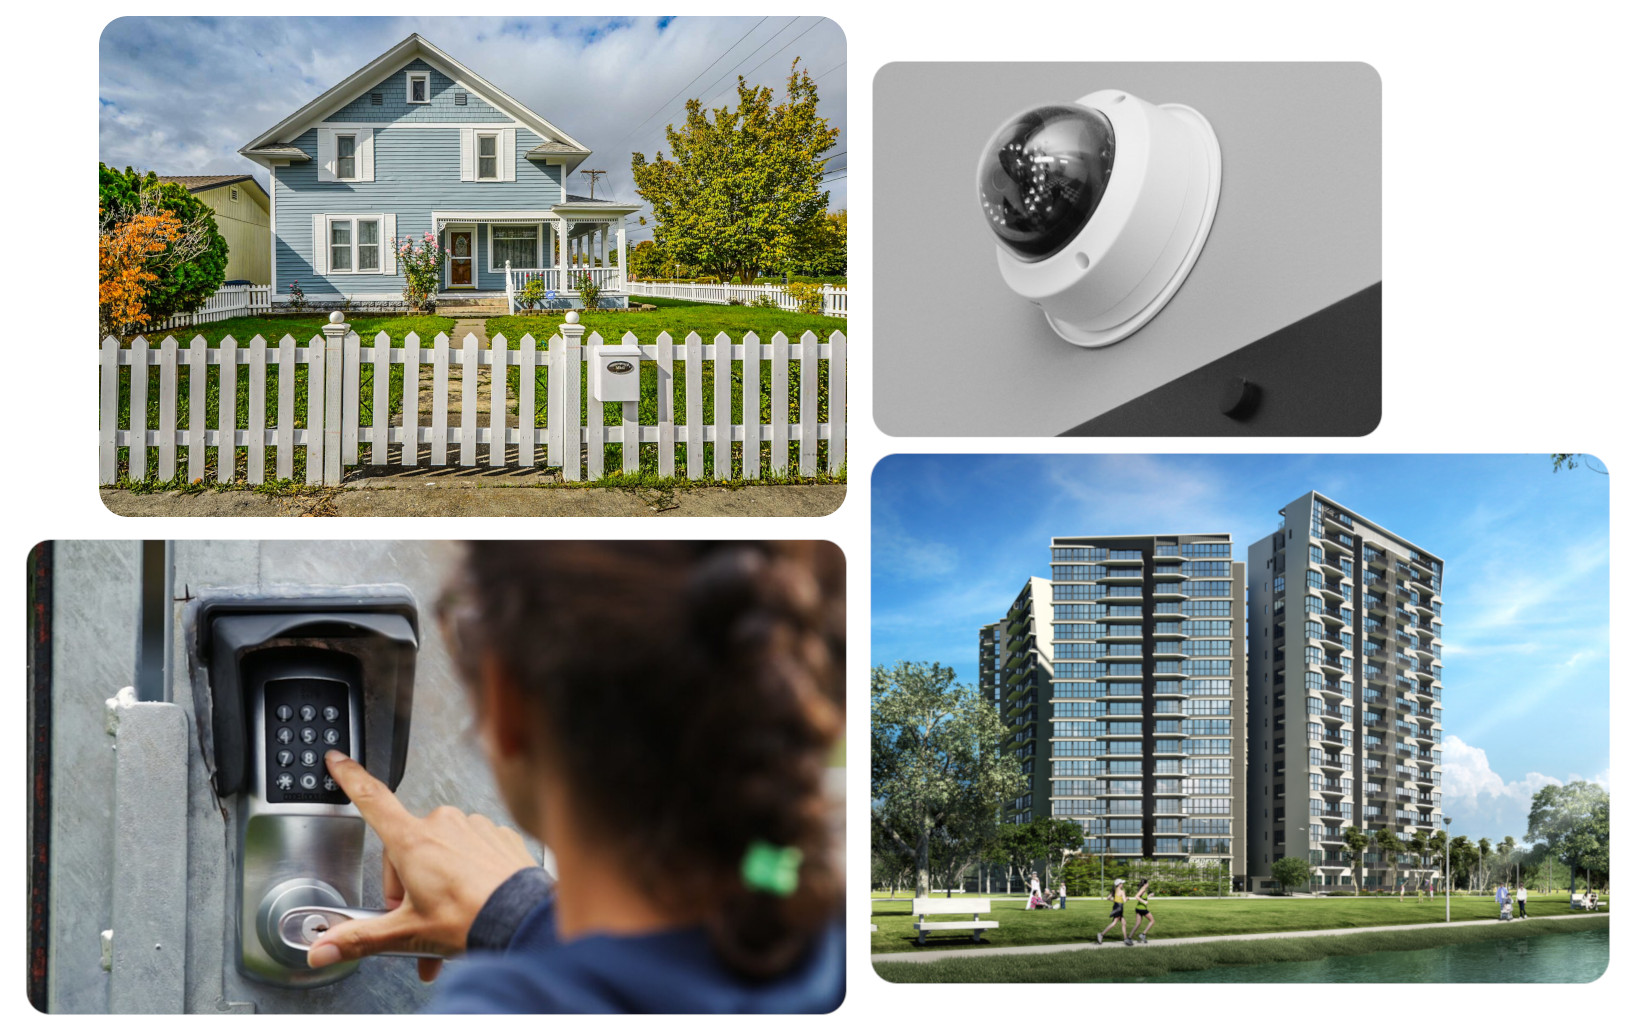 Collage of images - security camera, door entry access, residential and high rise building.